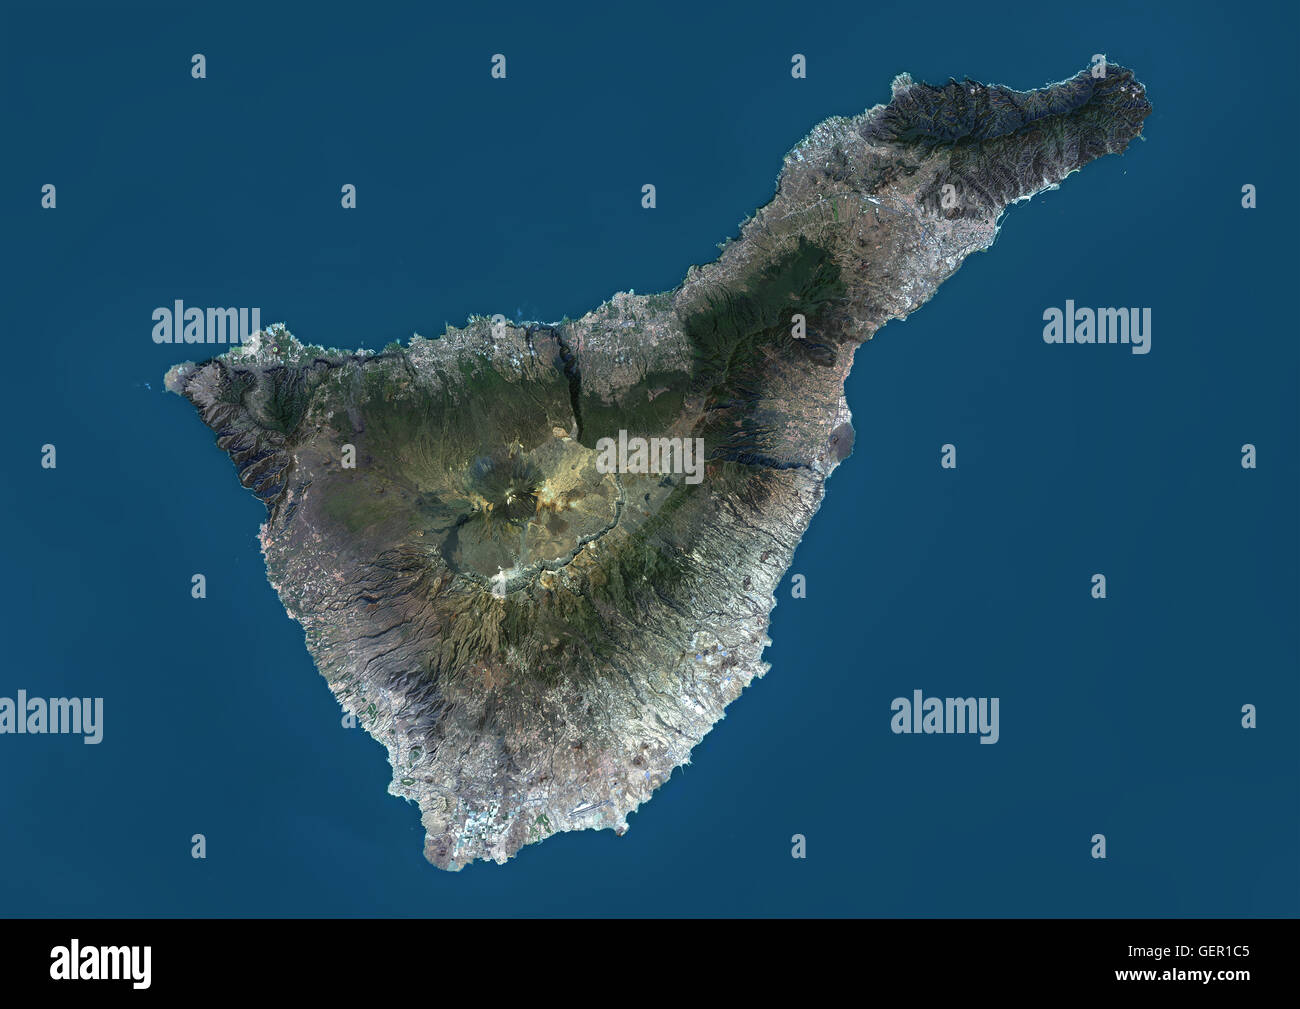 Satellite Map Of Spain.Satellite View Of Tenerife Canary Islands Spain It Is The Largest